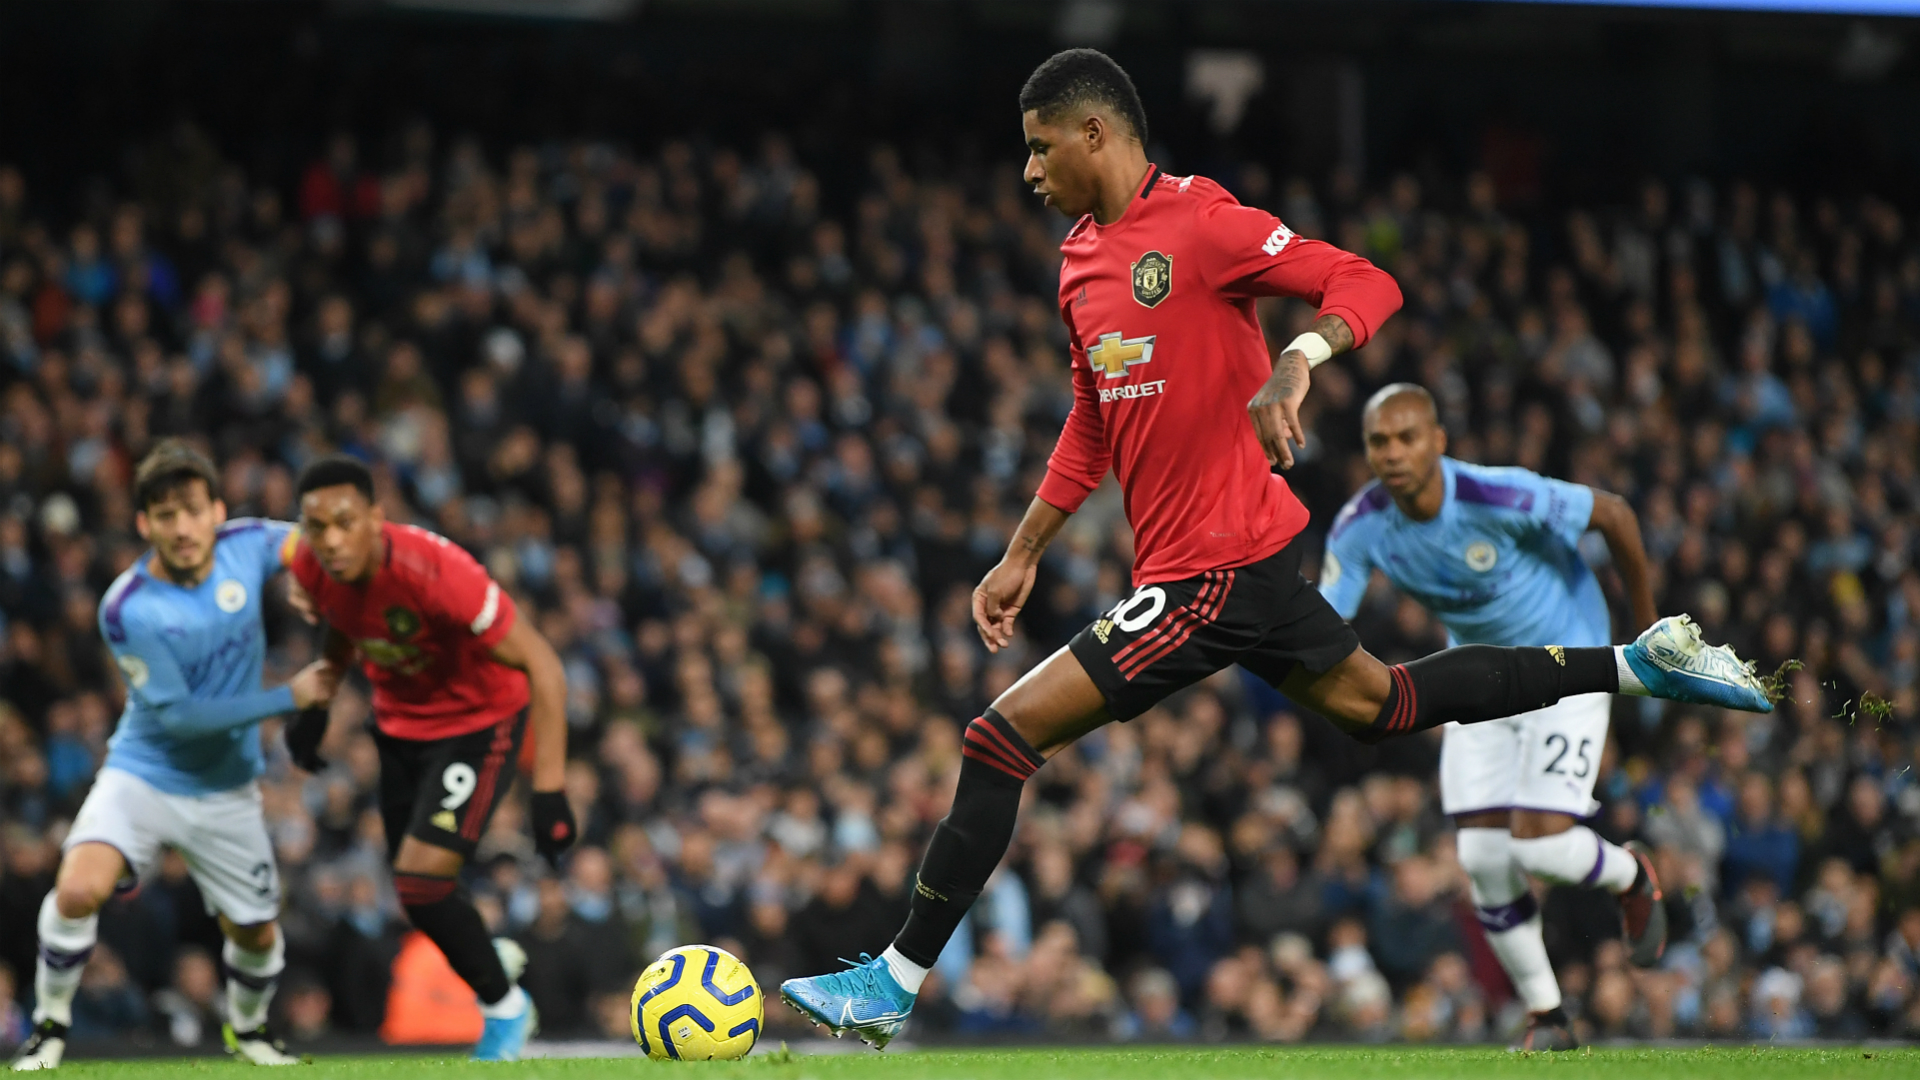 Marcus Rashford and Anthony Martial grabbed the first-half goals for Manchester United as the visitors secured a huge derby win over City.